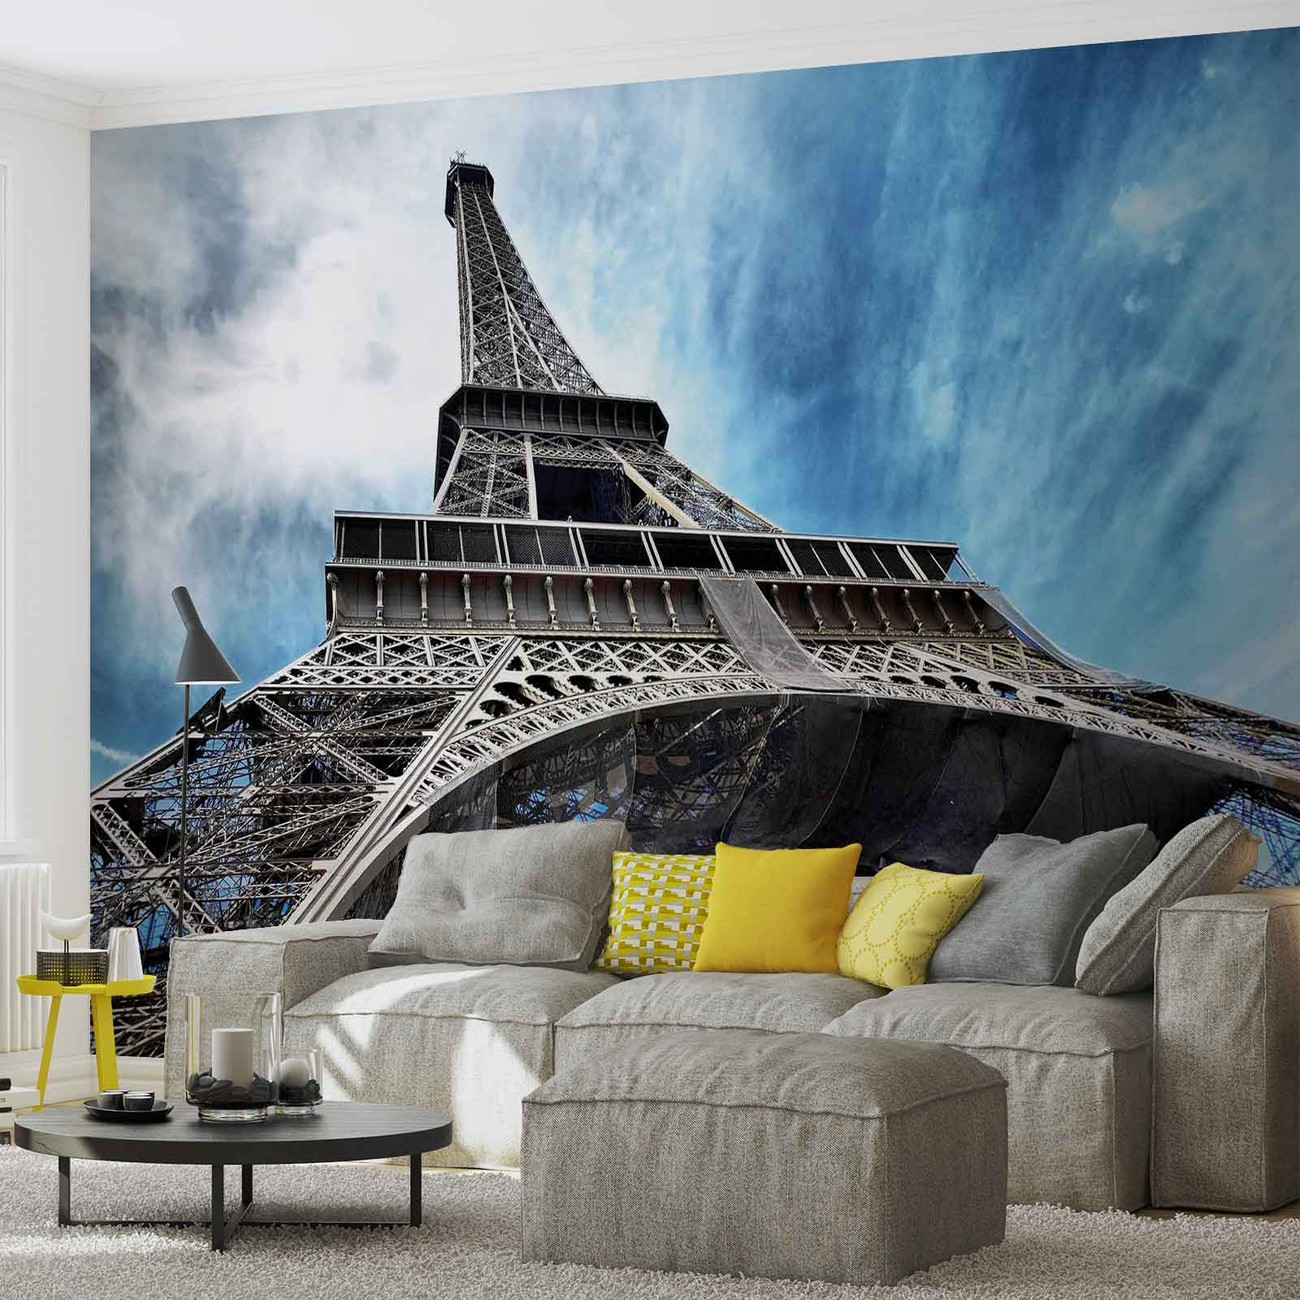 Eiffel tower paris wall paper mural buy at europosters for Eiffel tower wall mural ikea